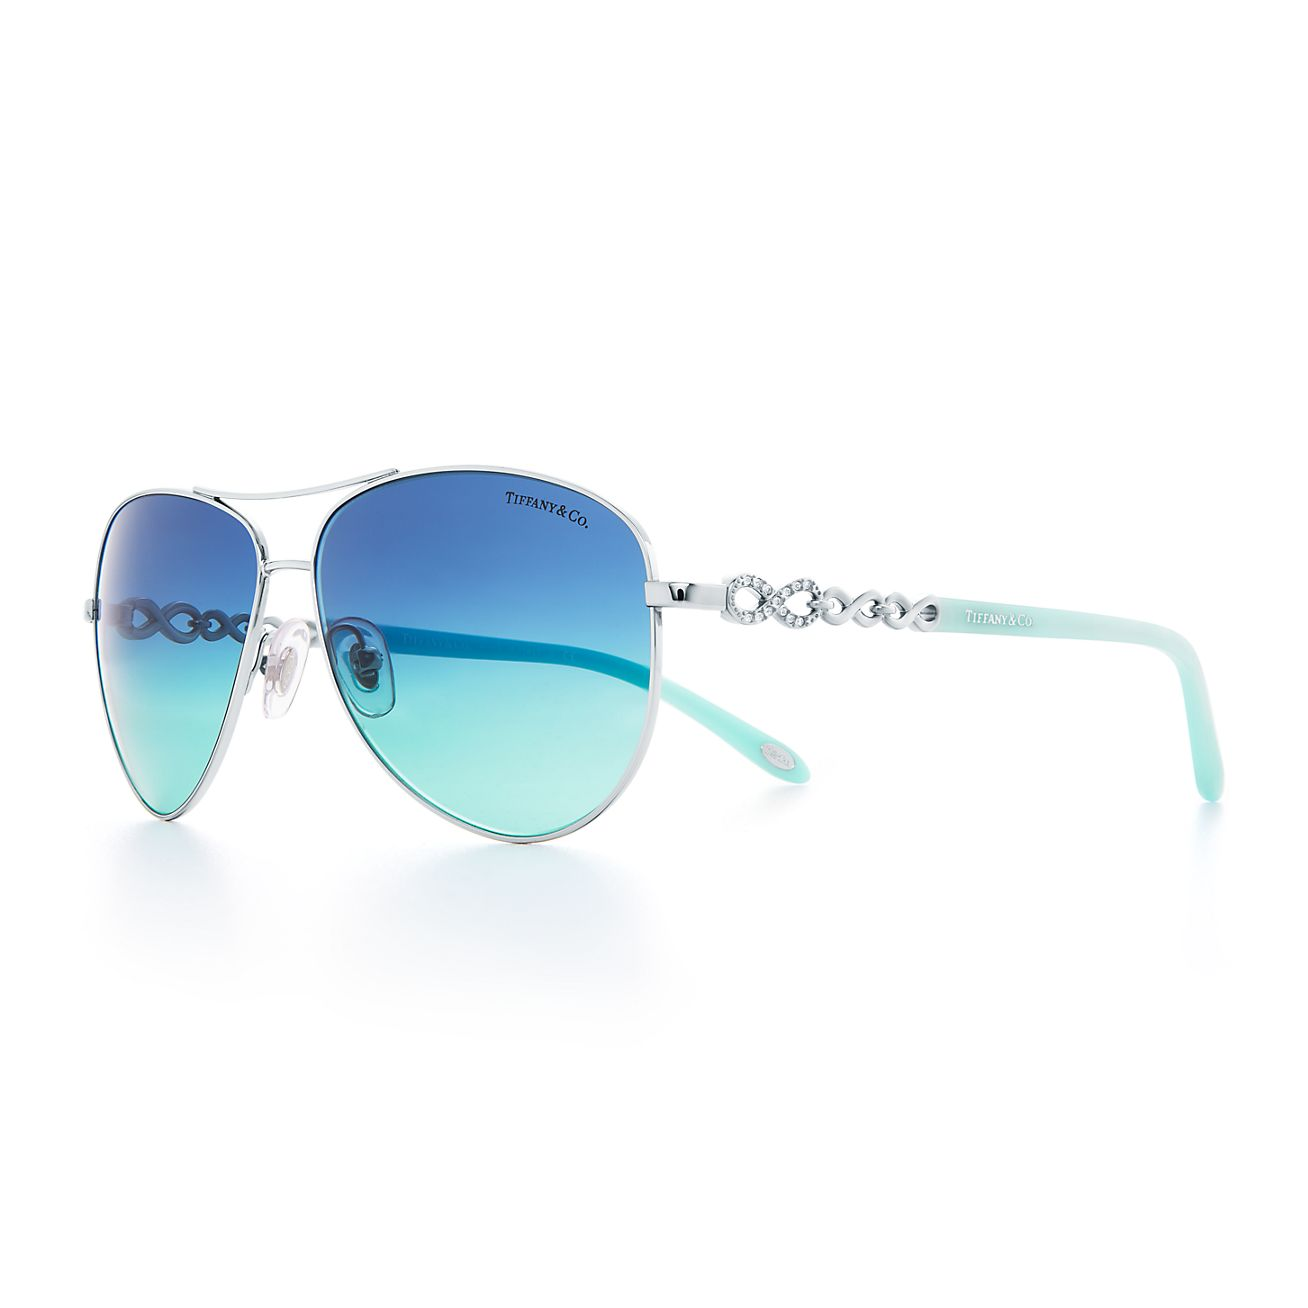 Tiffany Infinity aviator sunglasses in silver-colored metal and ...